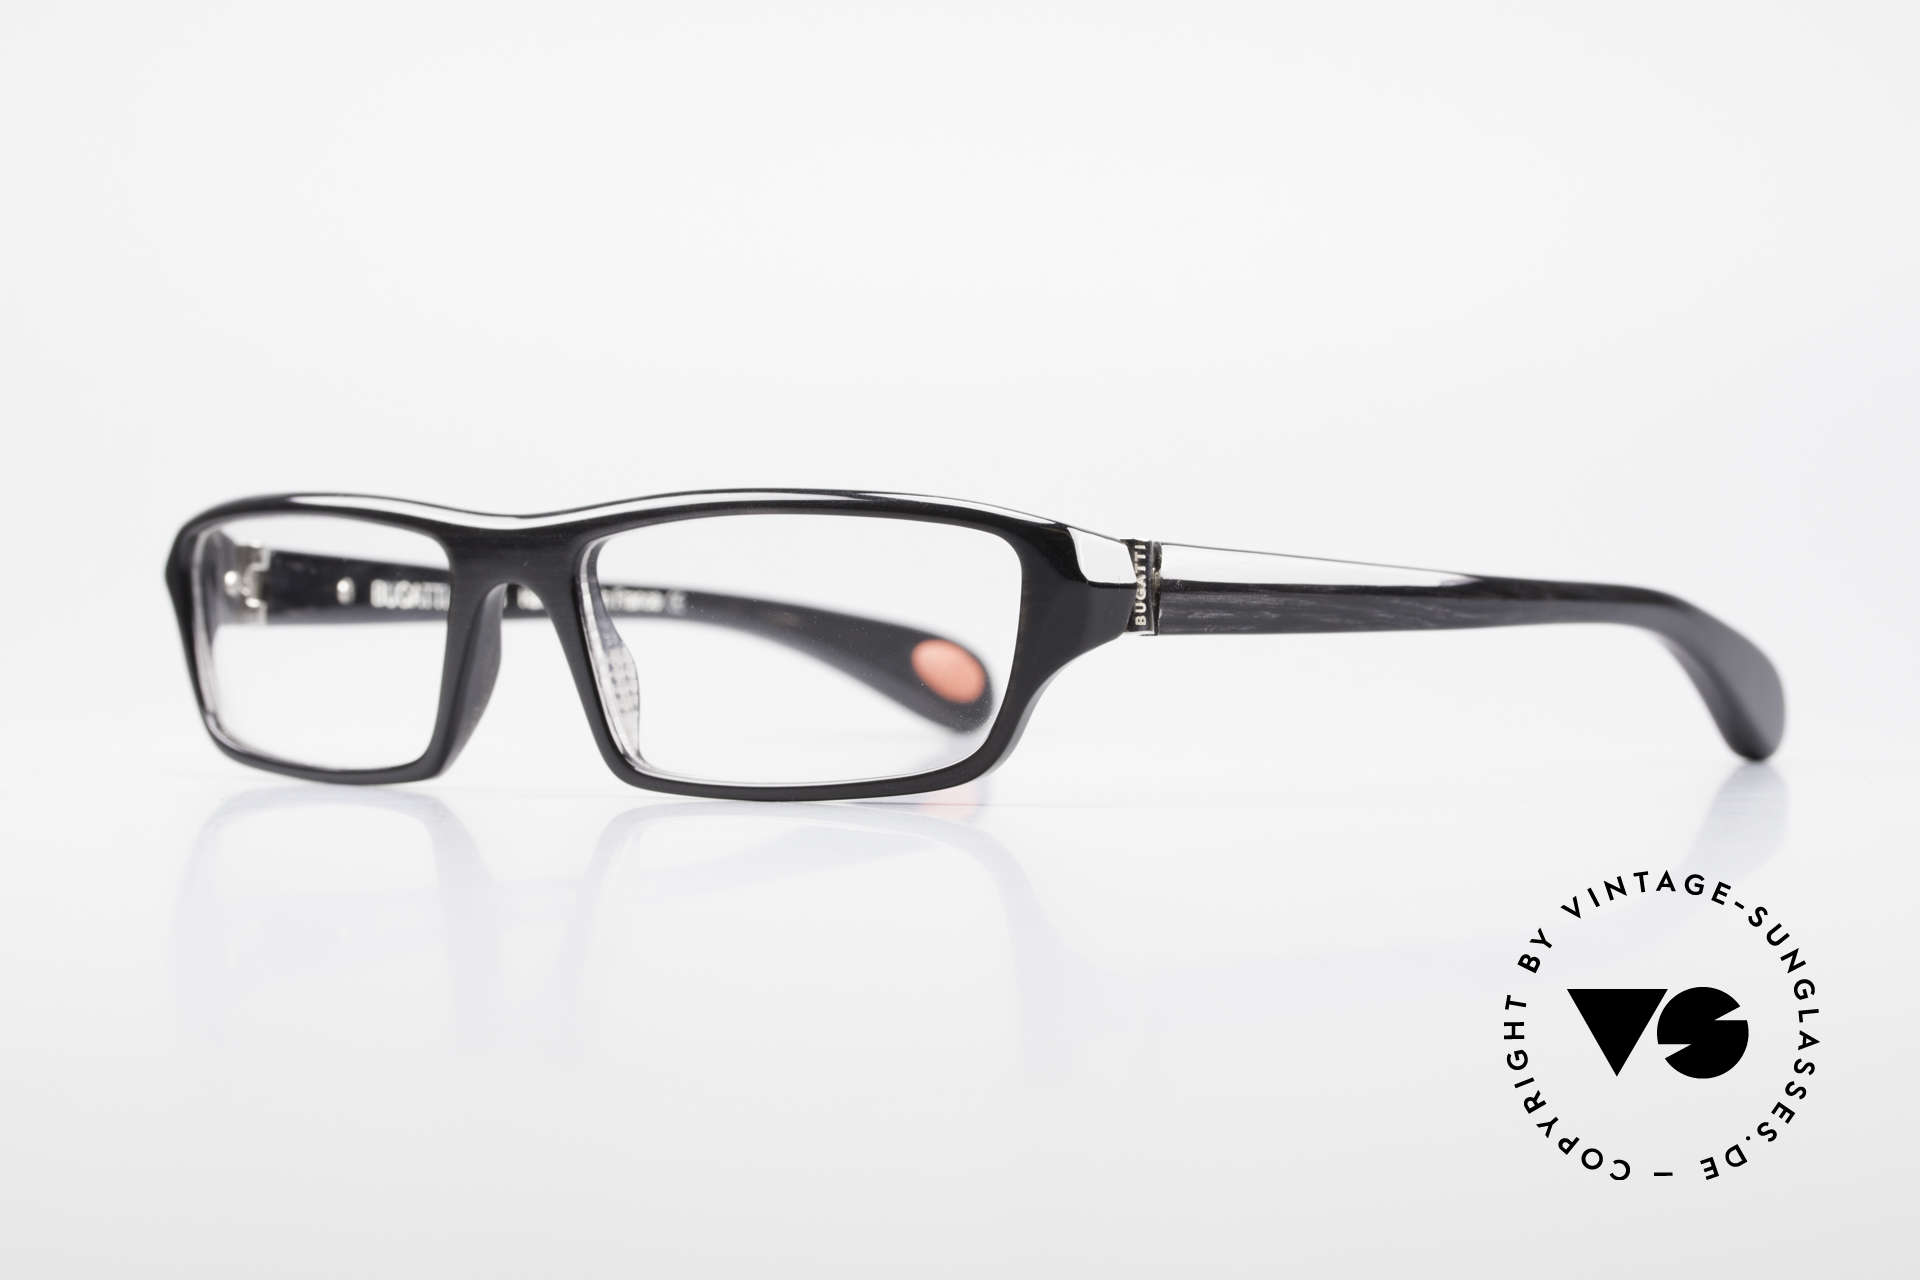 Bugatti 470 Limited Luxury Eyeglasses Men, 1. class wearing comfort due to spring hinges, Made for Men